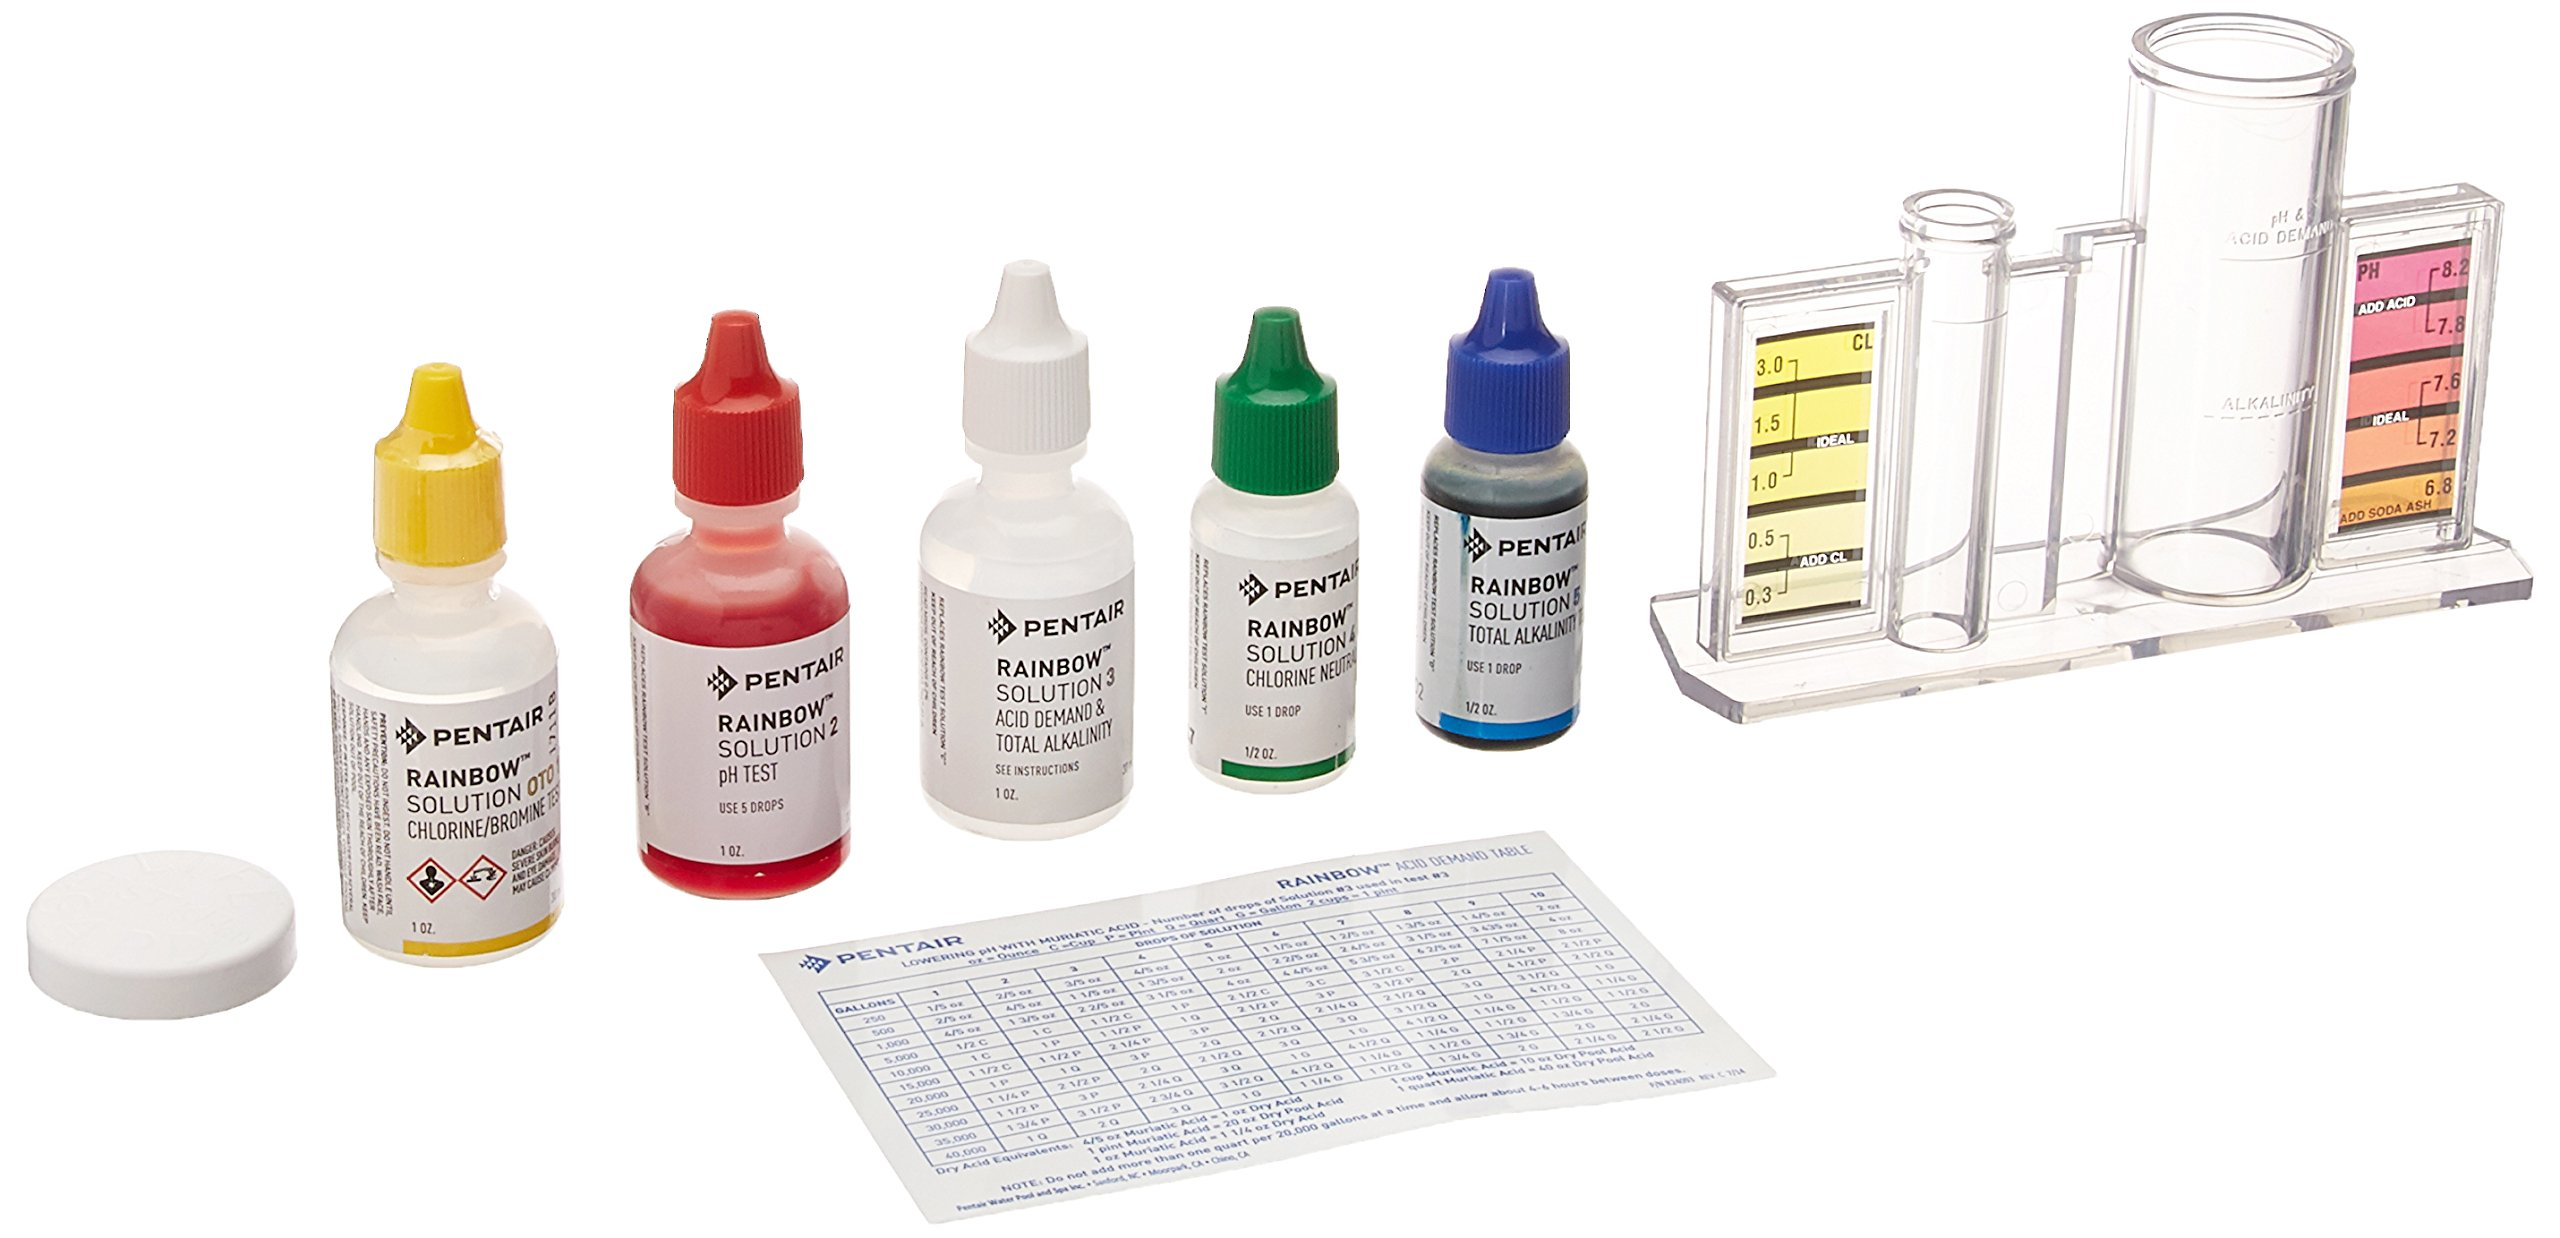 Pentair R151186 78HR All in One 4 Way pH and Chlorine Test Kit by Pentair